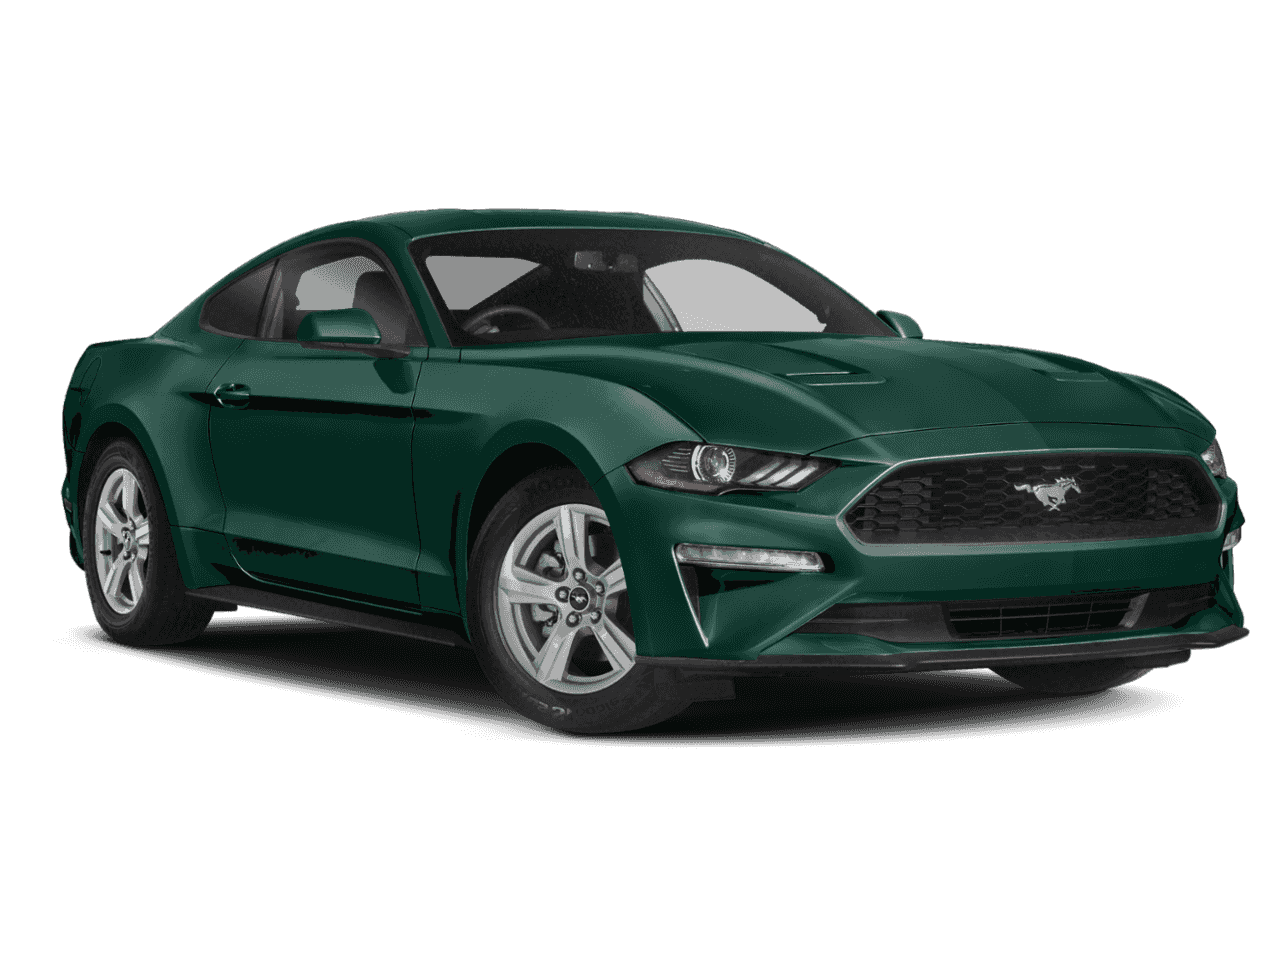 "2019 Ford<br/><span class=""vdp-trim"">Mustang Bullitt RWD 2D Coupe</span>"